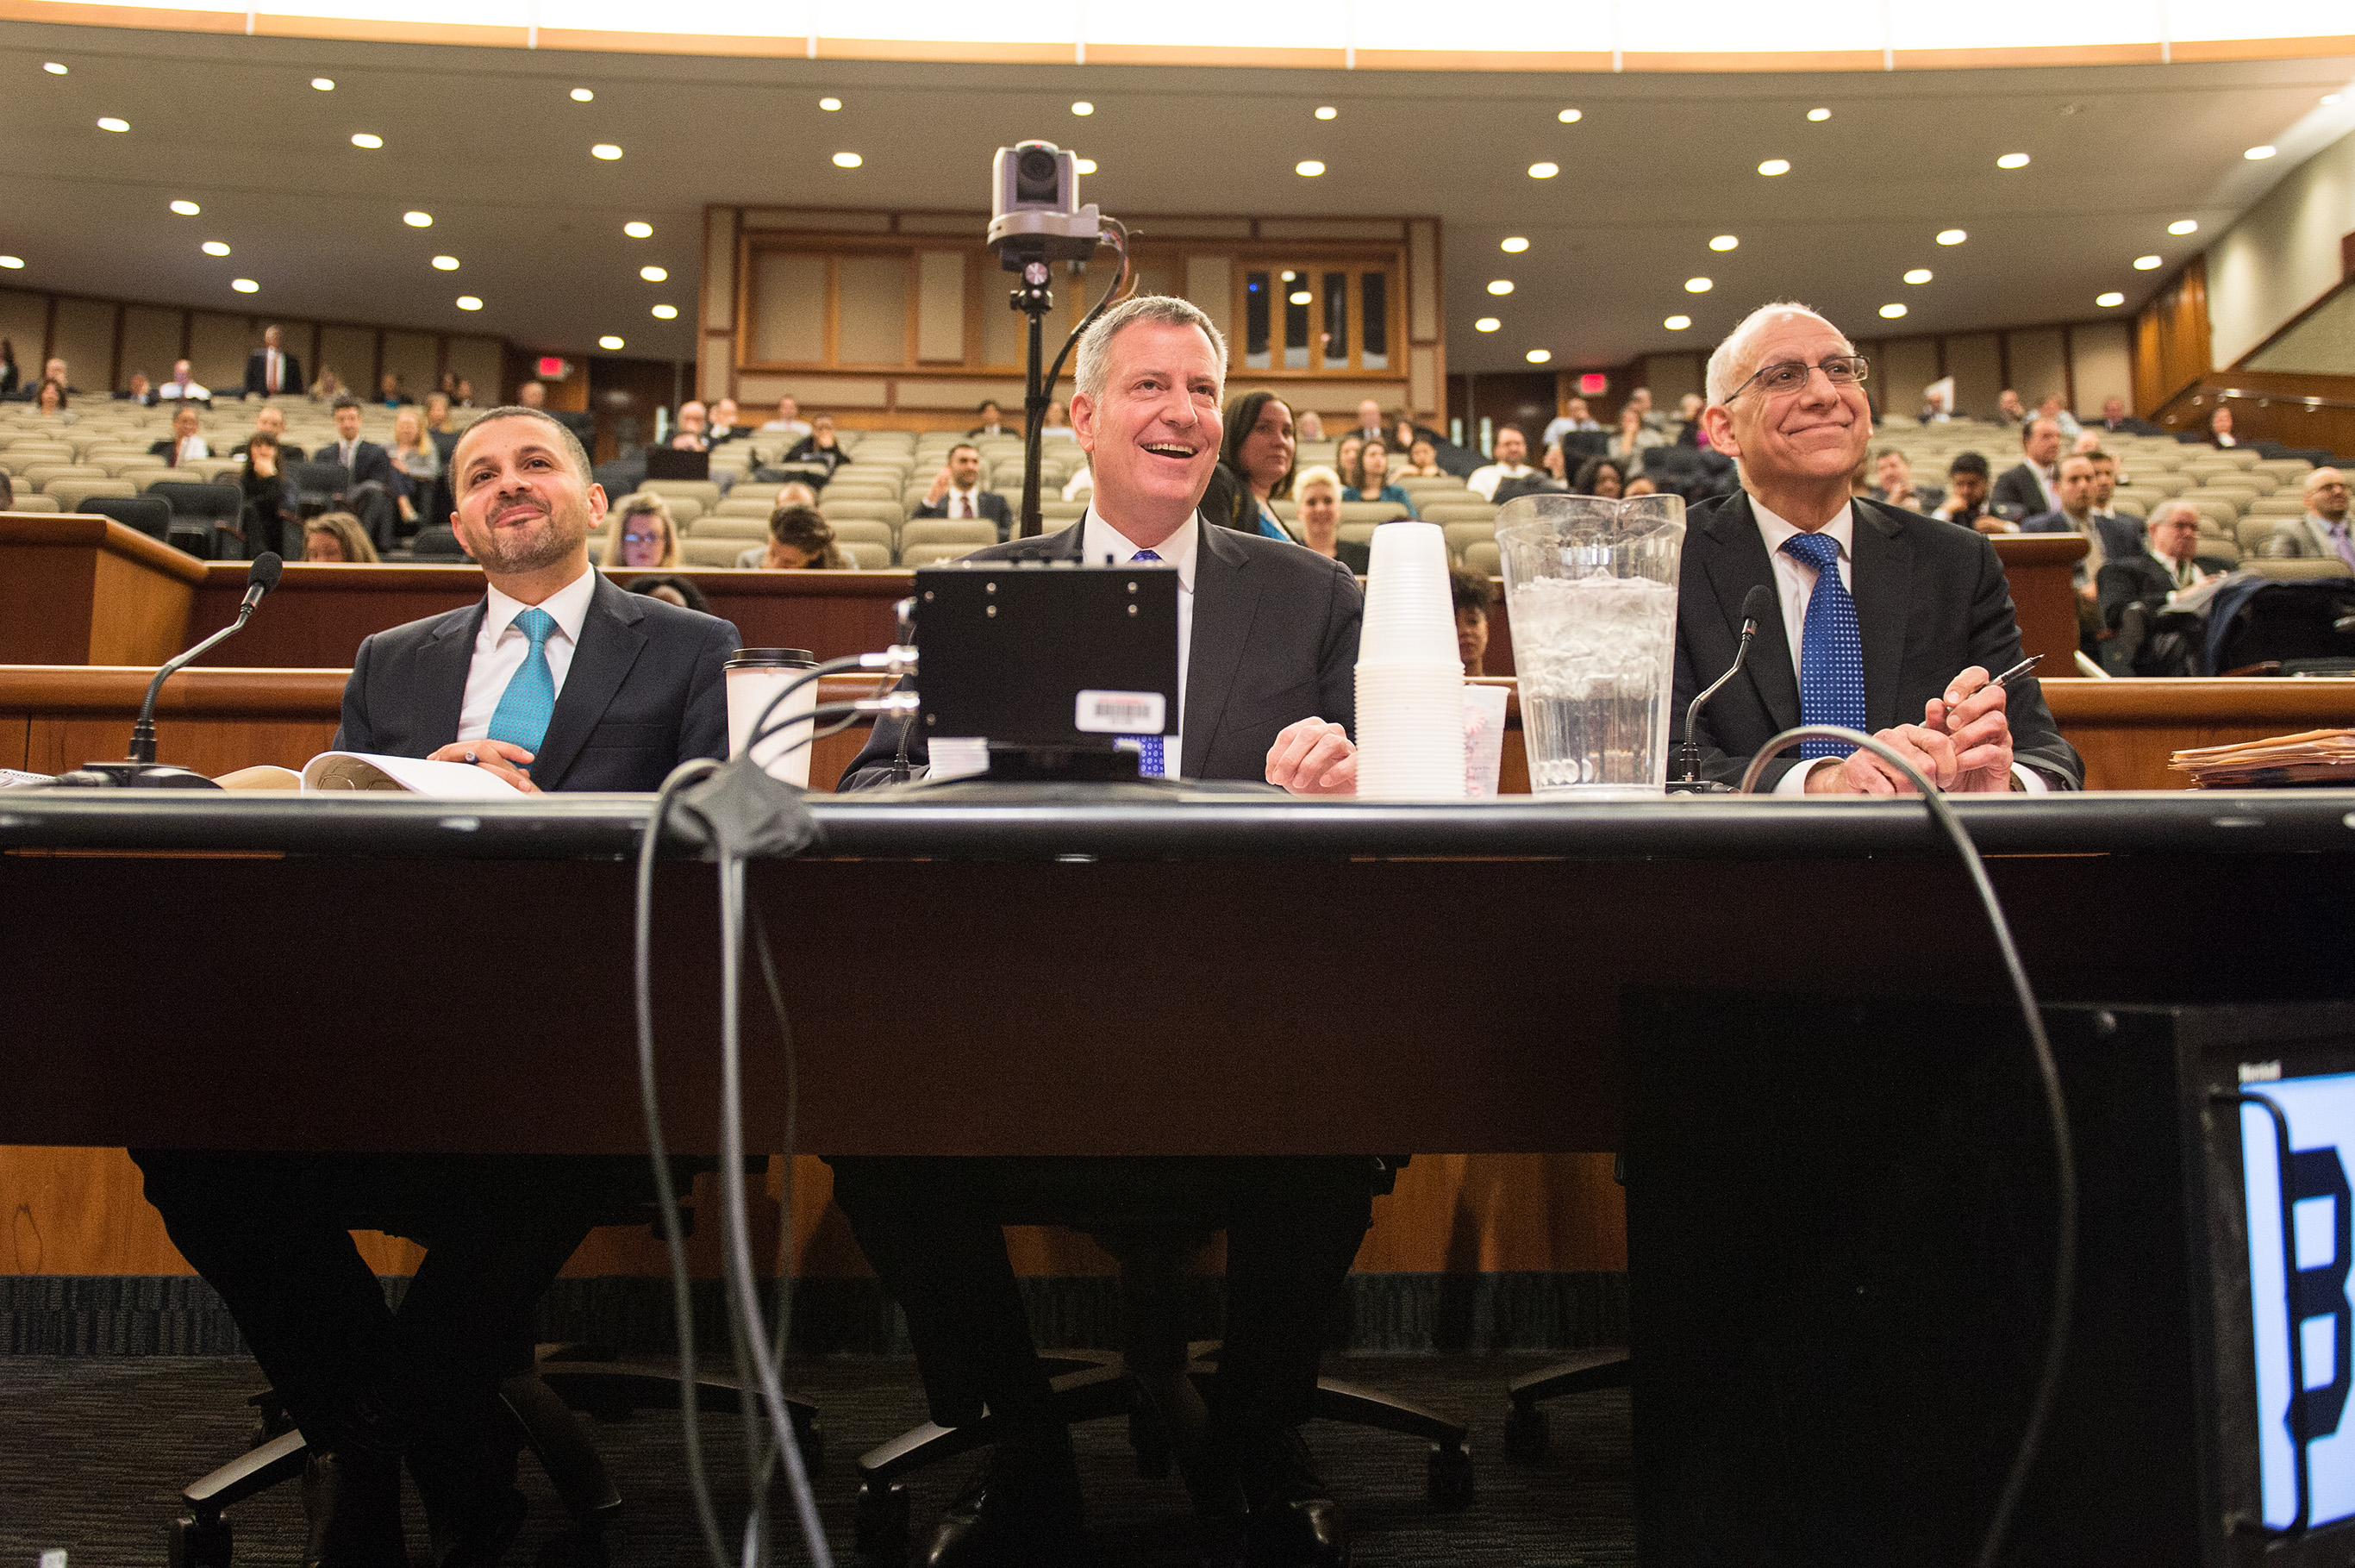 Mayor Bill de Blasio testifies during a state budget hearing at the Legislative Office Building in Albany, New York Tuesday, January 26, 2016. (Photo: Ed Reed/Mayoral Photography Office)